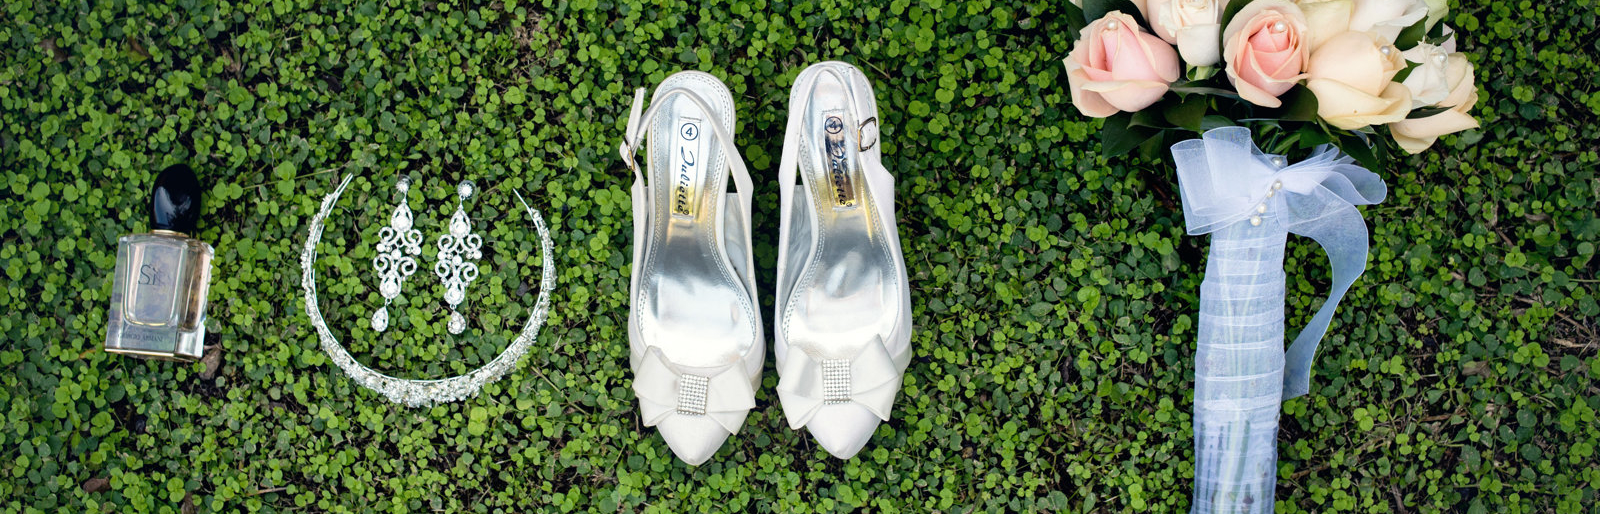 5 Of The Hottest Wedding Shoe Trends of 2016